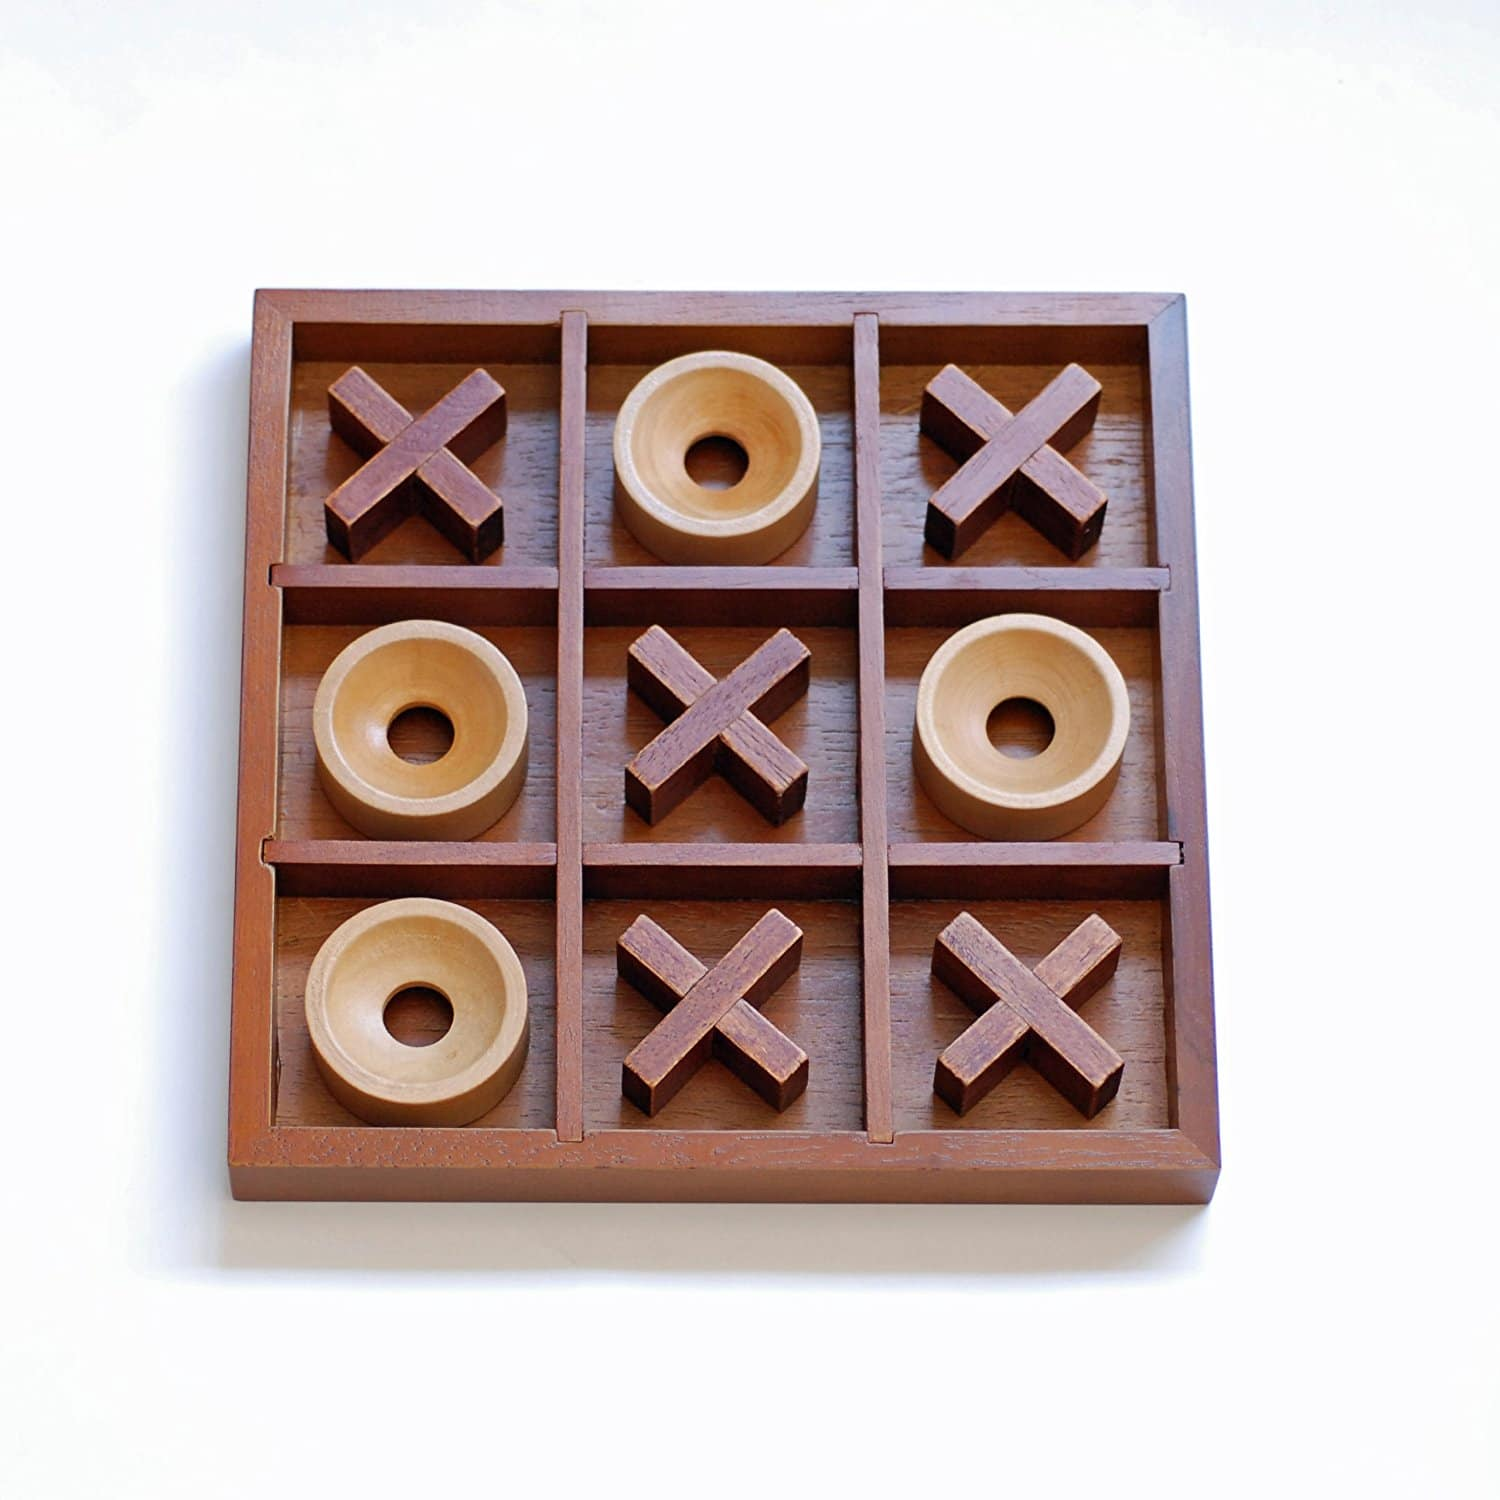 Coffee Table Tic Tac Toe Set